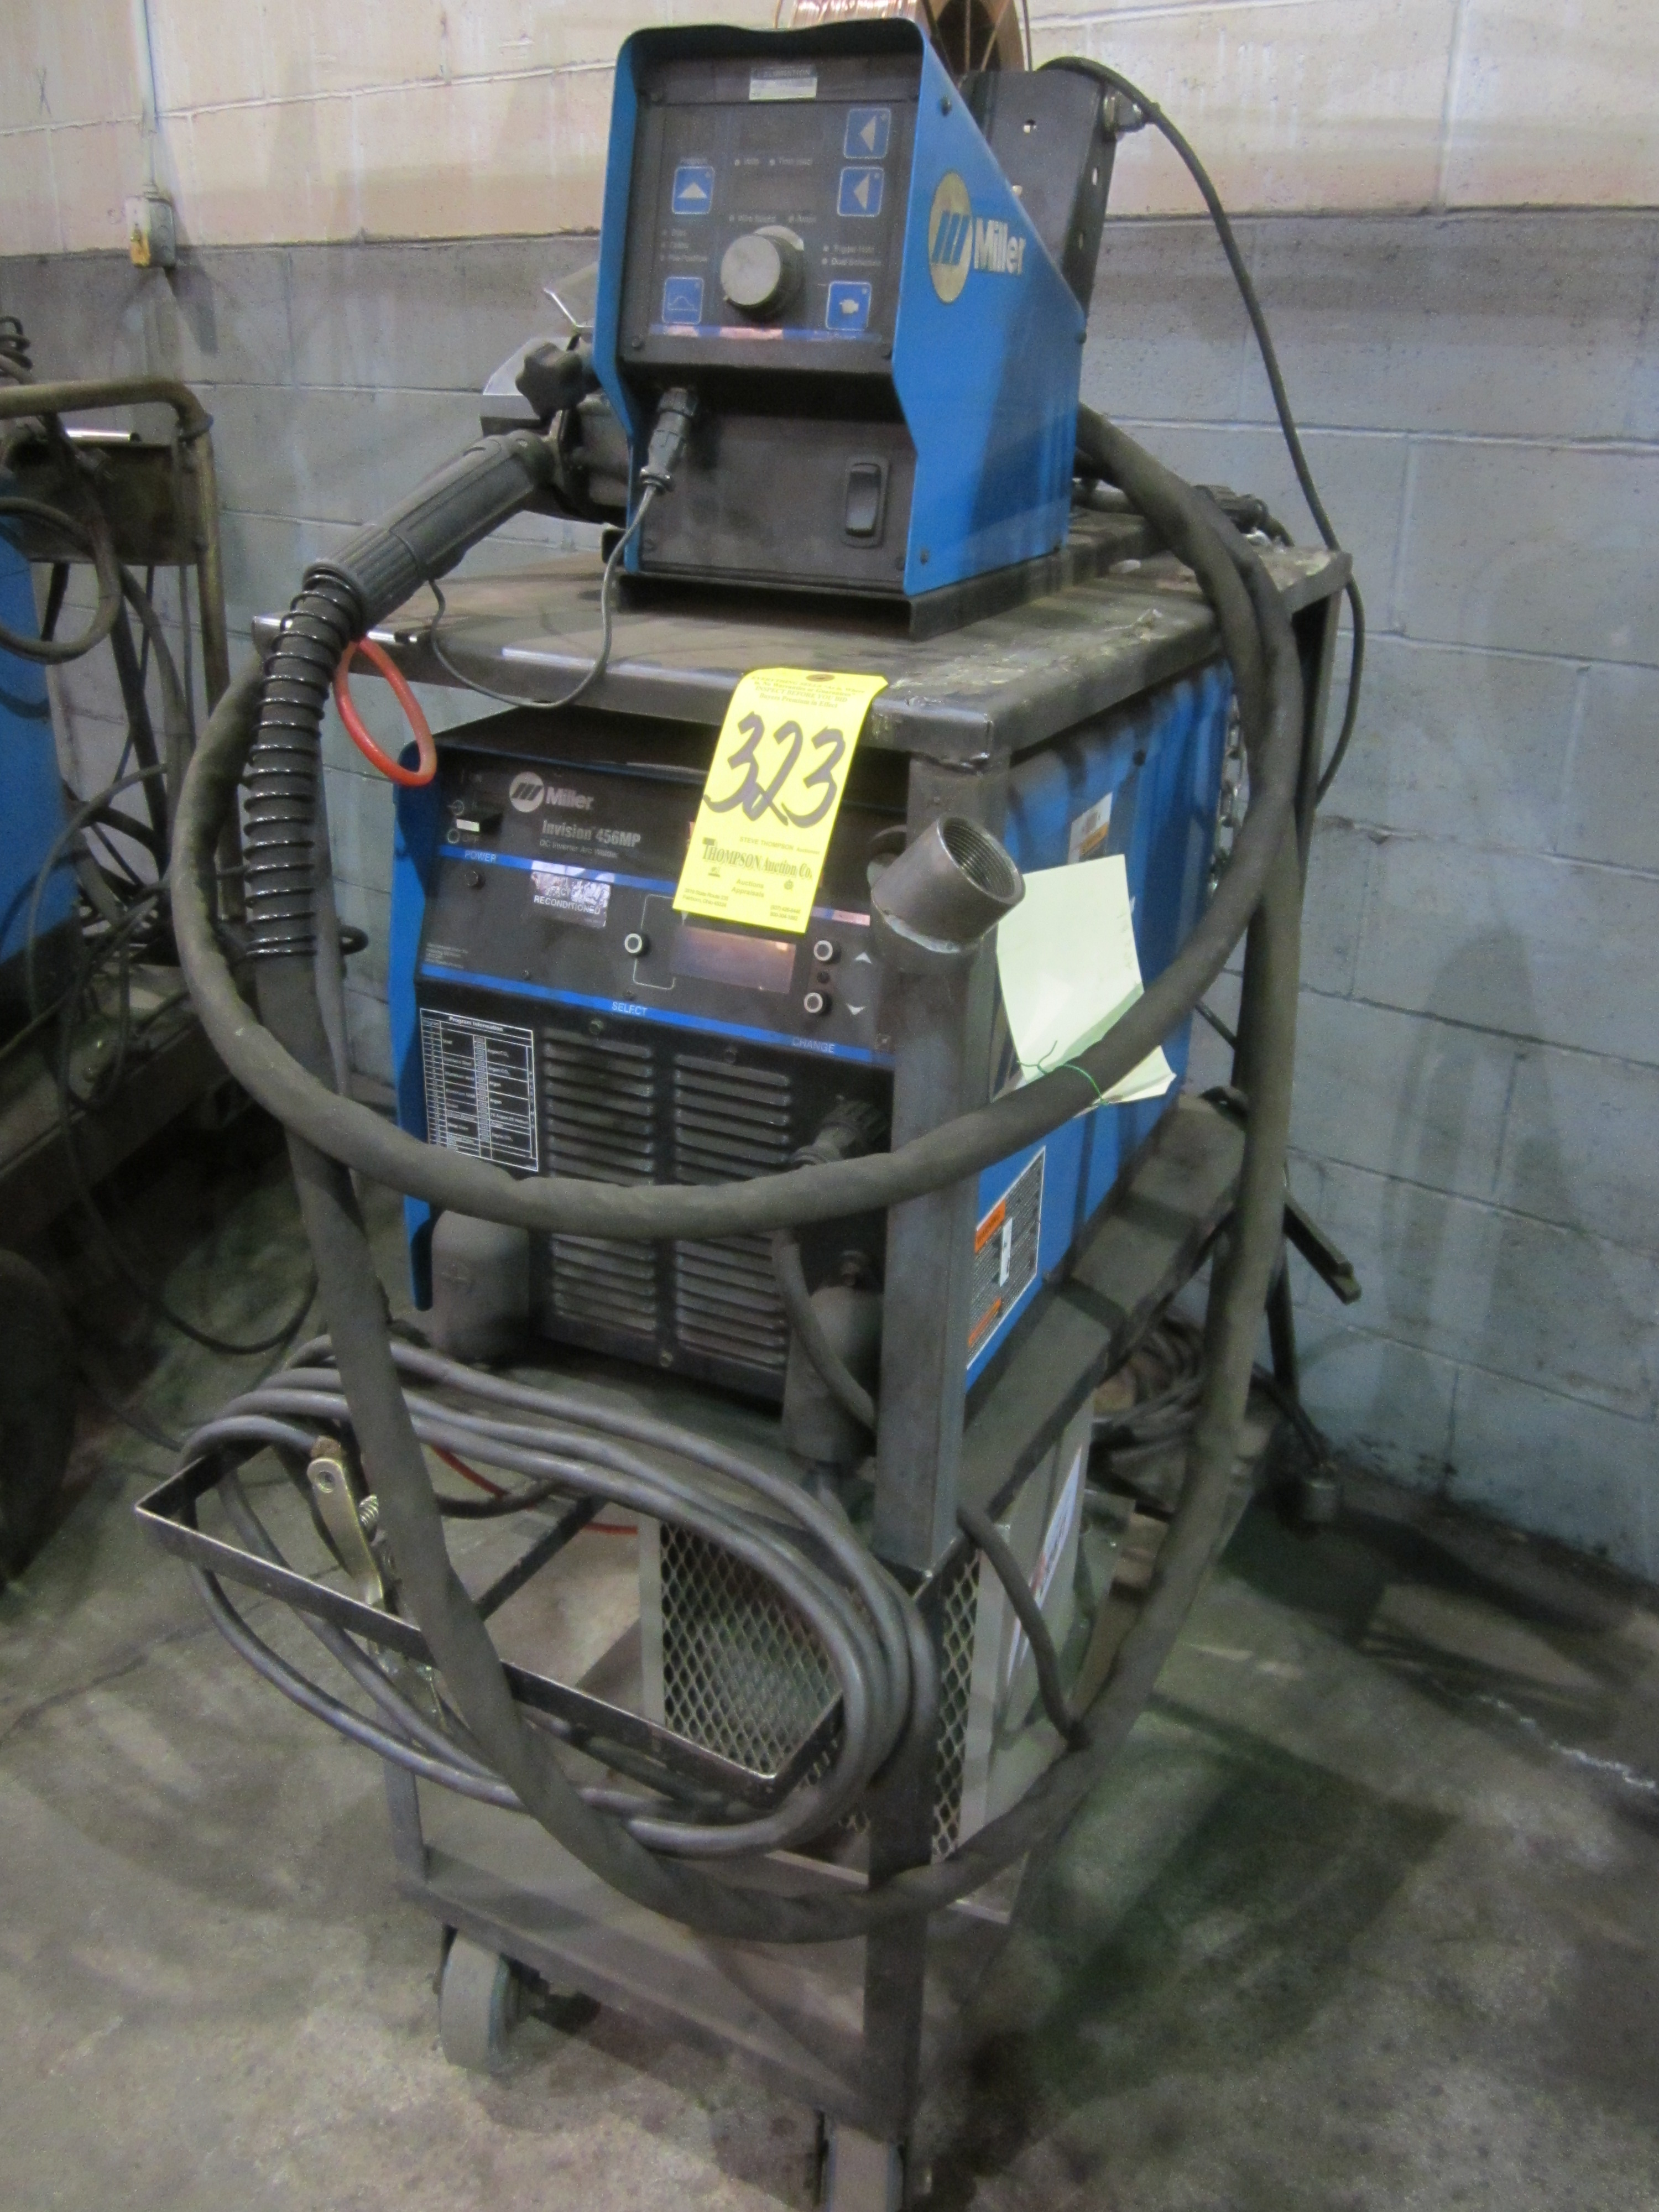 Miller Invision 456MP Mig Welder, s/n LE424916, Miller Wire Feed